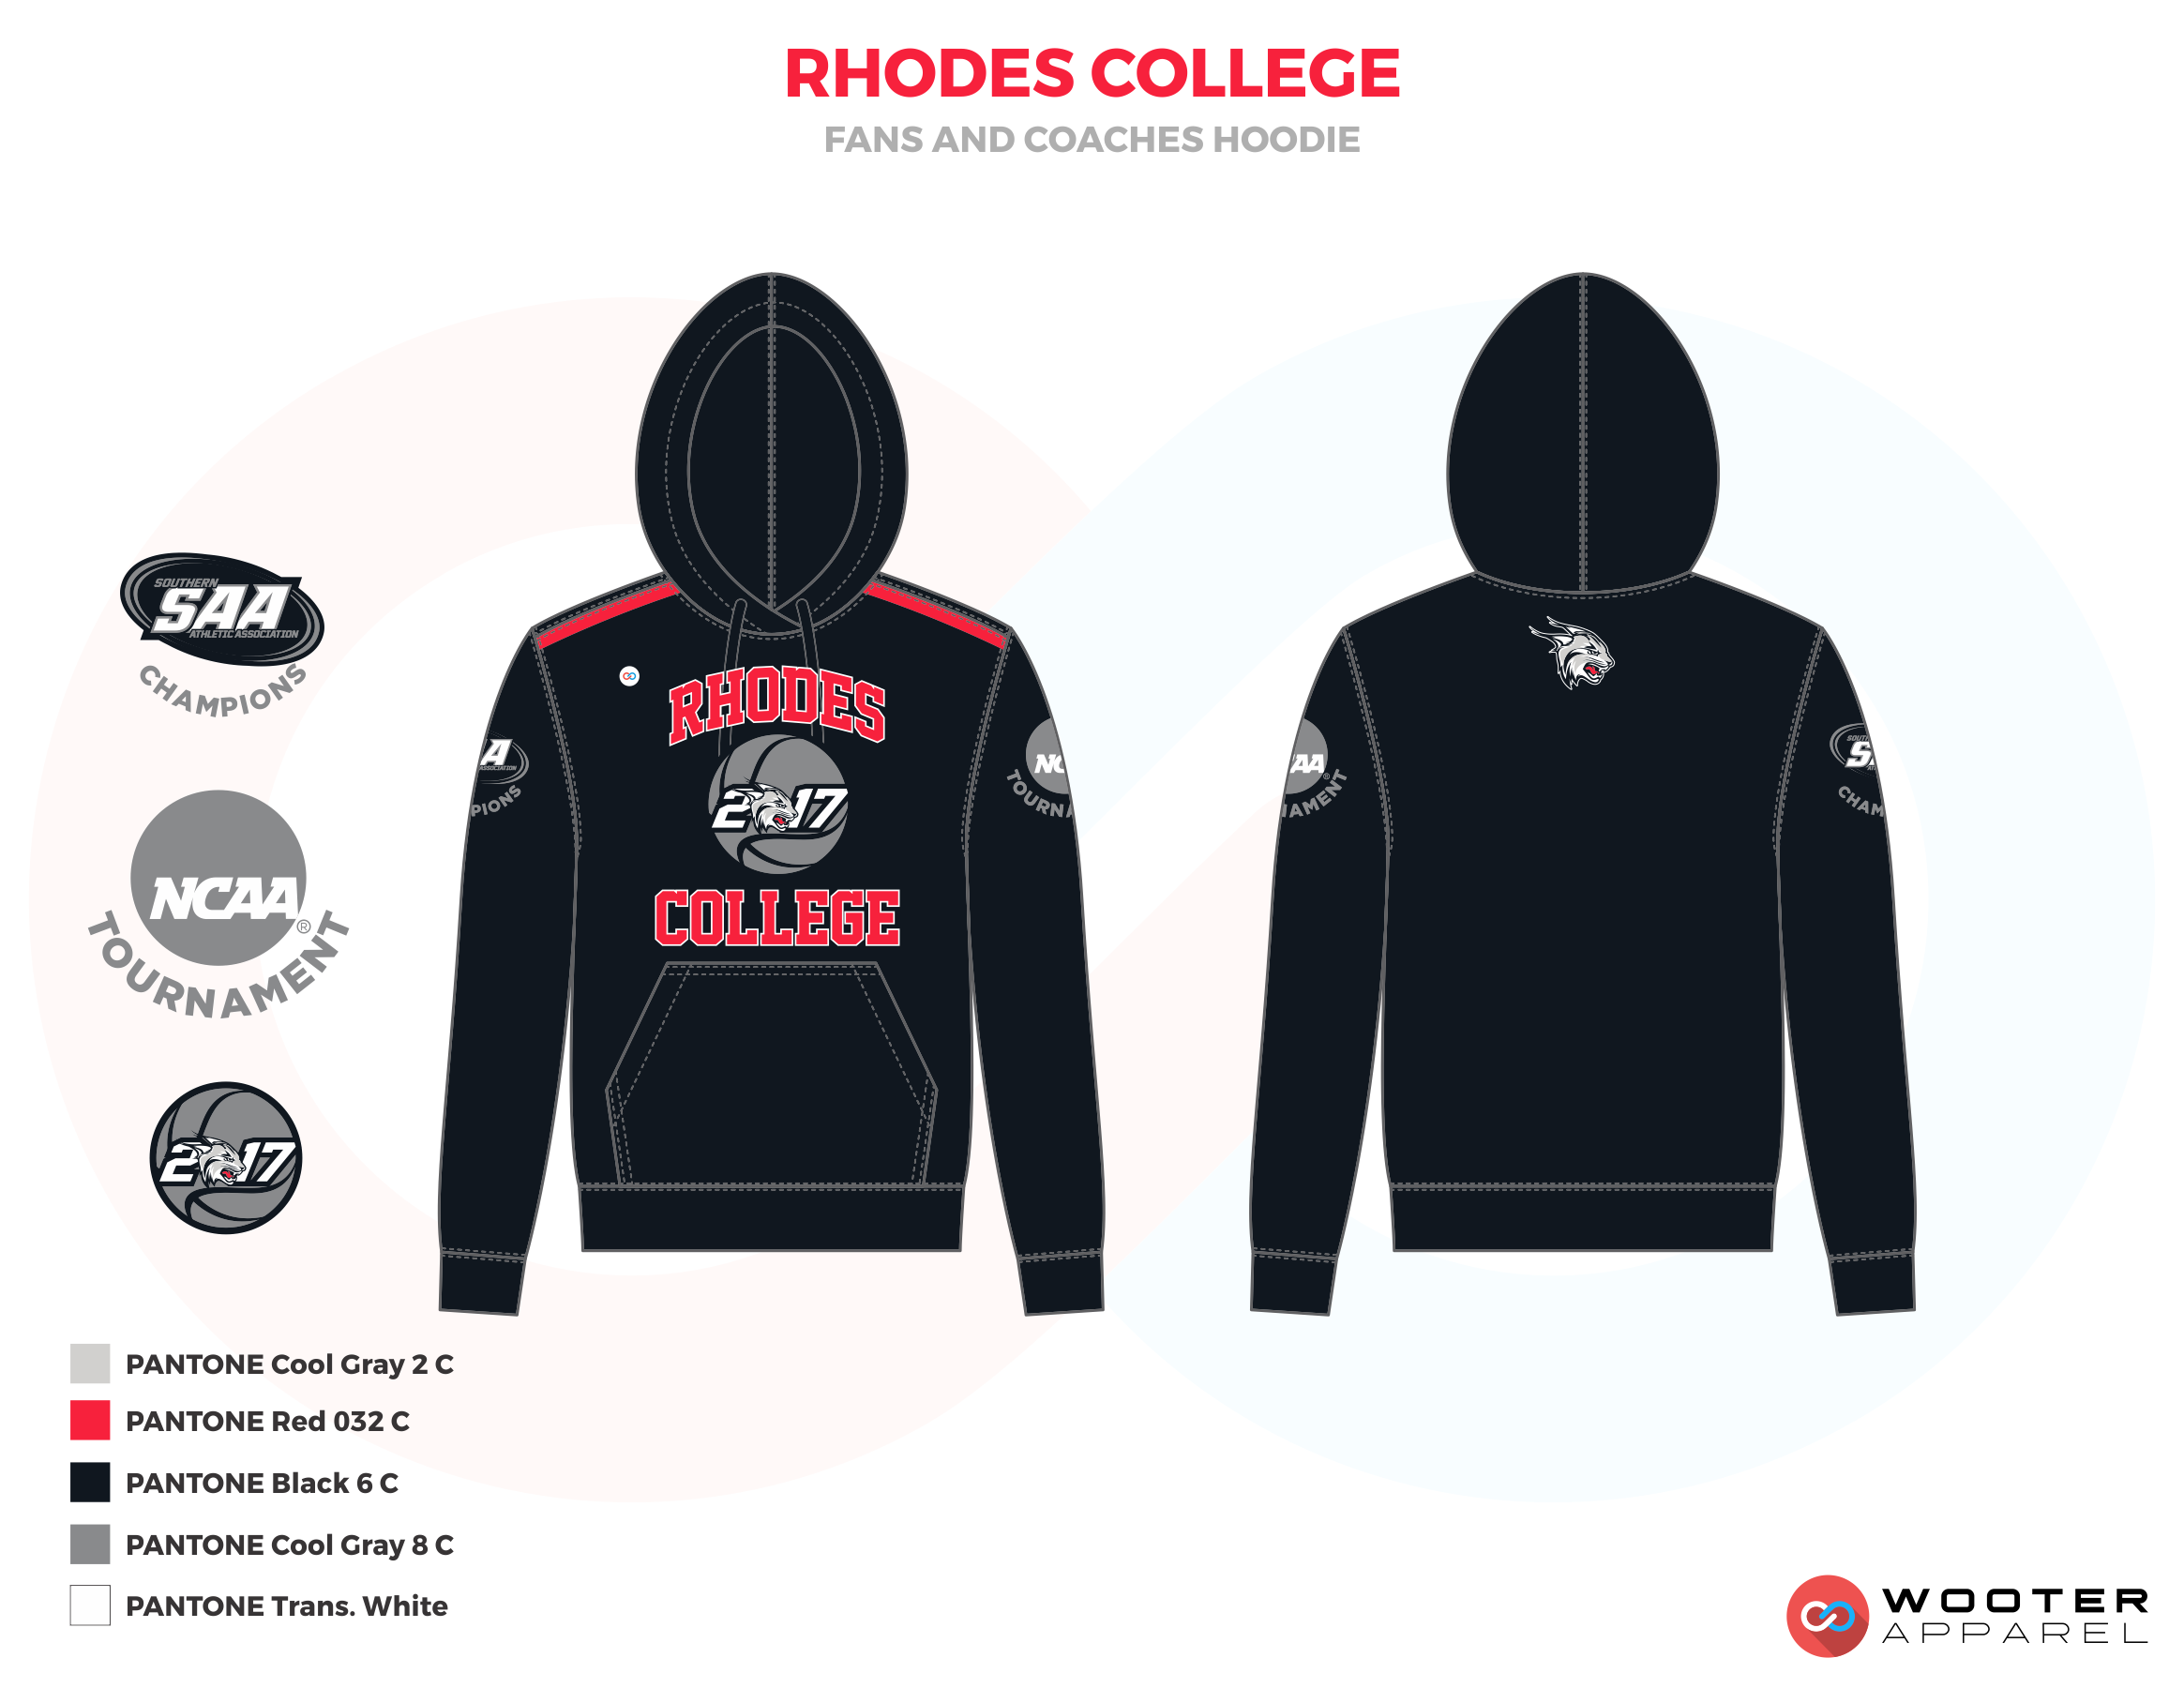 RHODES COLLEGE black red gray School coaches uniforms hoodie